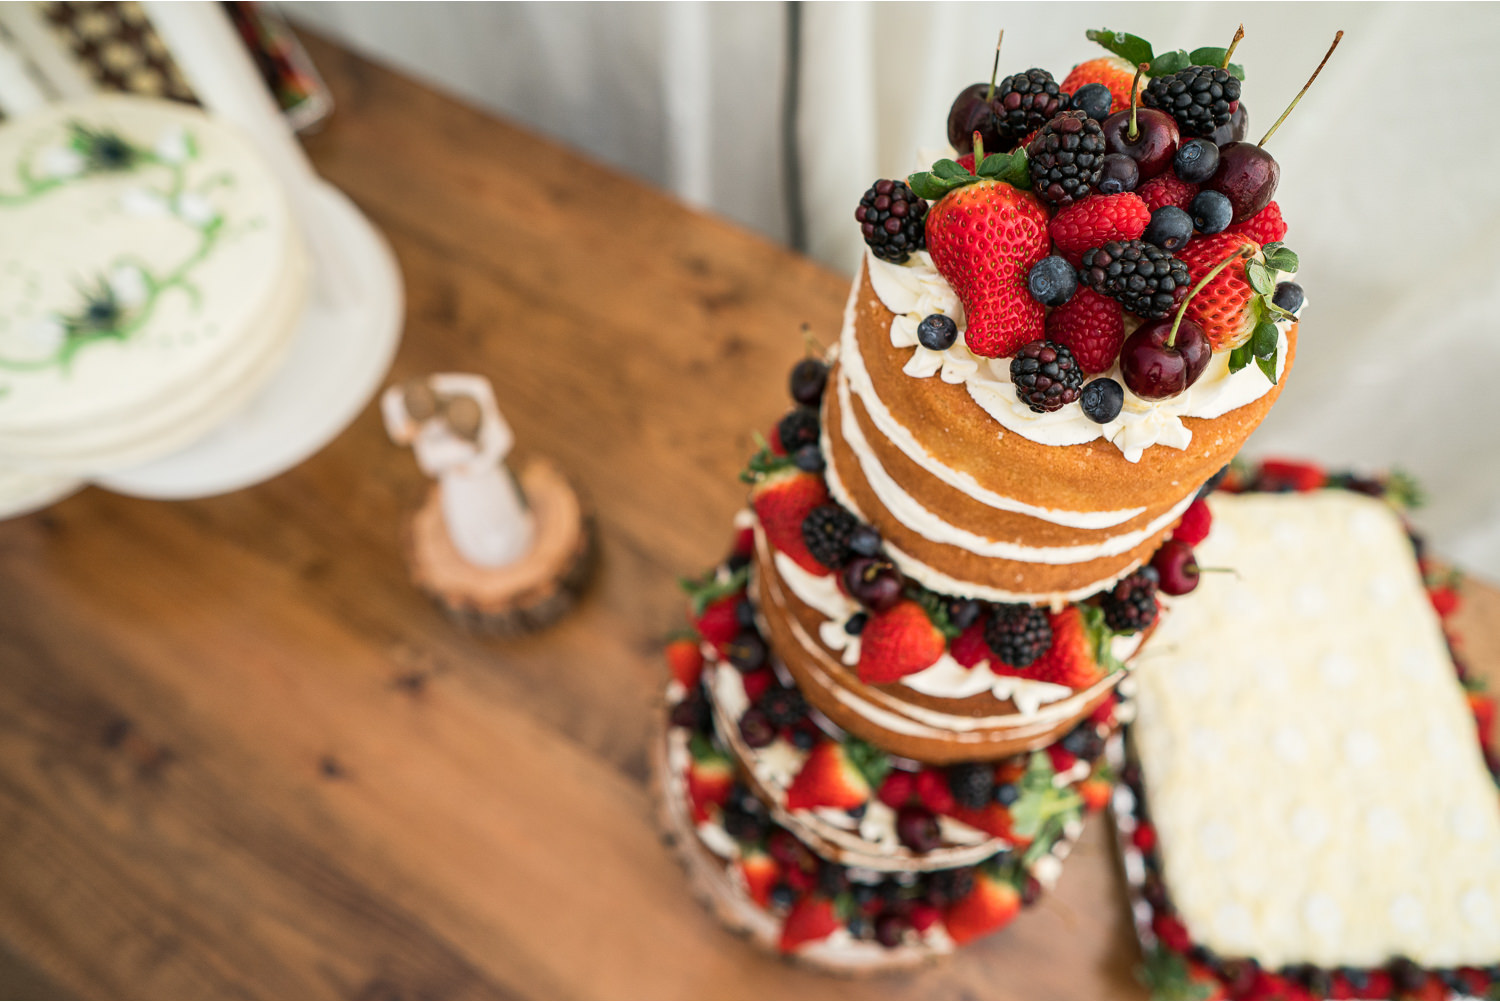 photo of a towering wedding cake